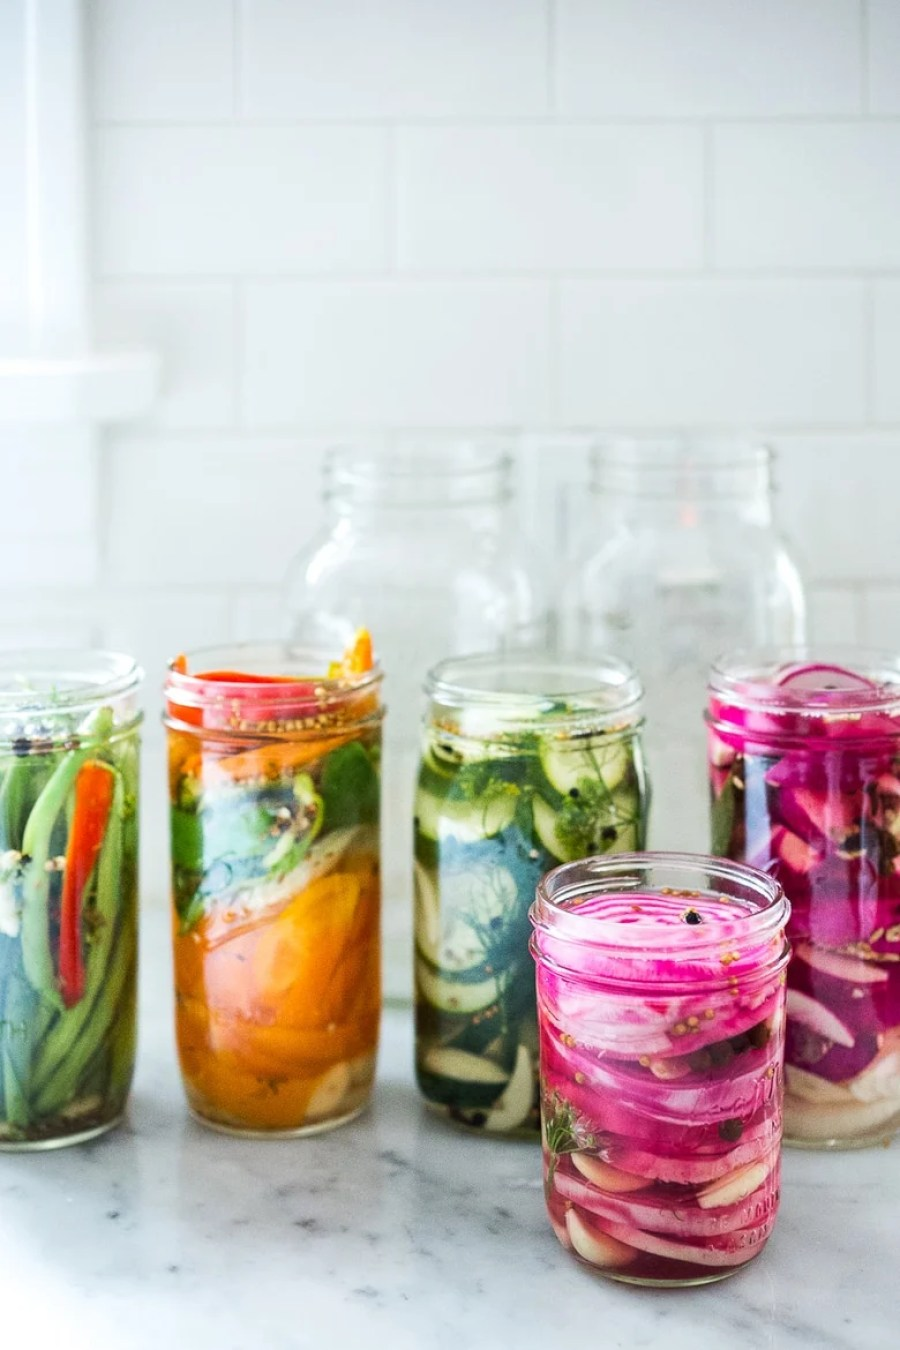 Extend the life of summer produce with the simple recipe for Quick Refrigerator pickles! Try this with Beets, turnips radishes, carrots or green beans! | www.feastingathome.com